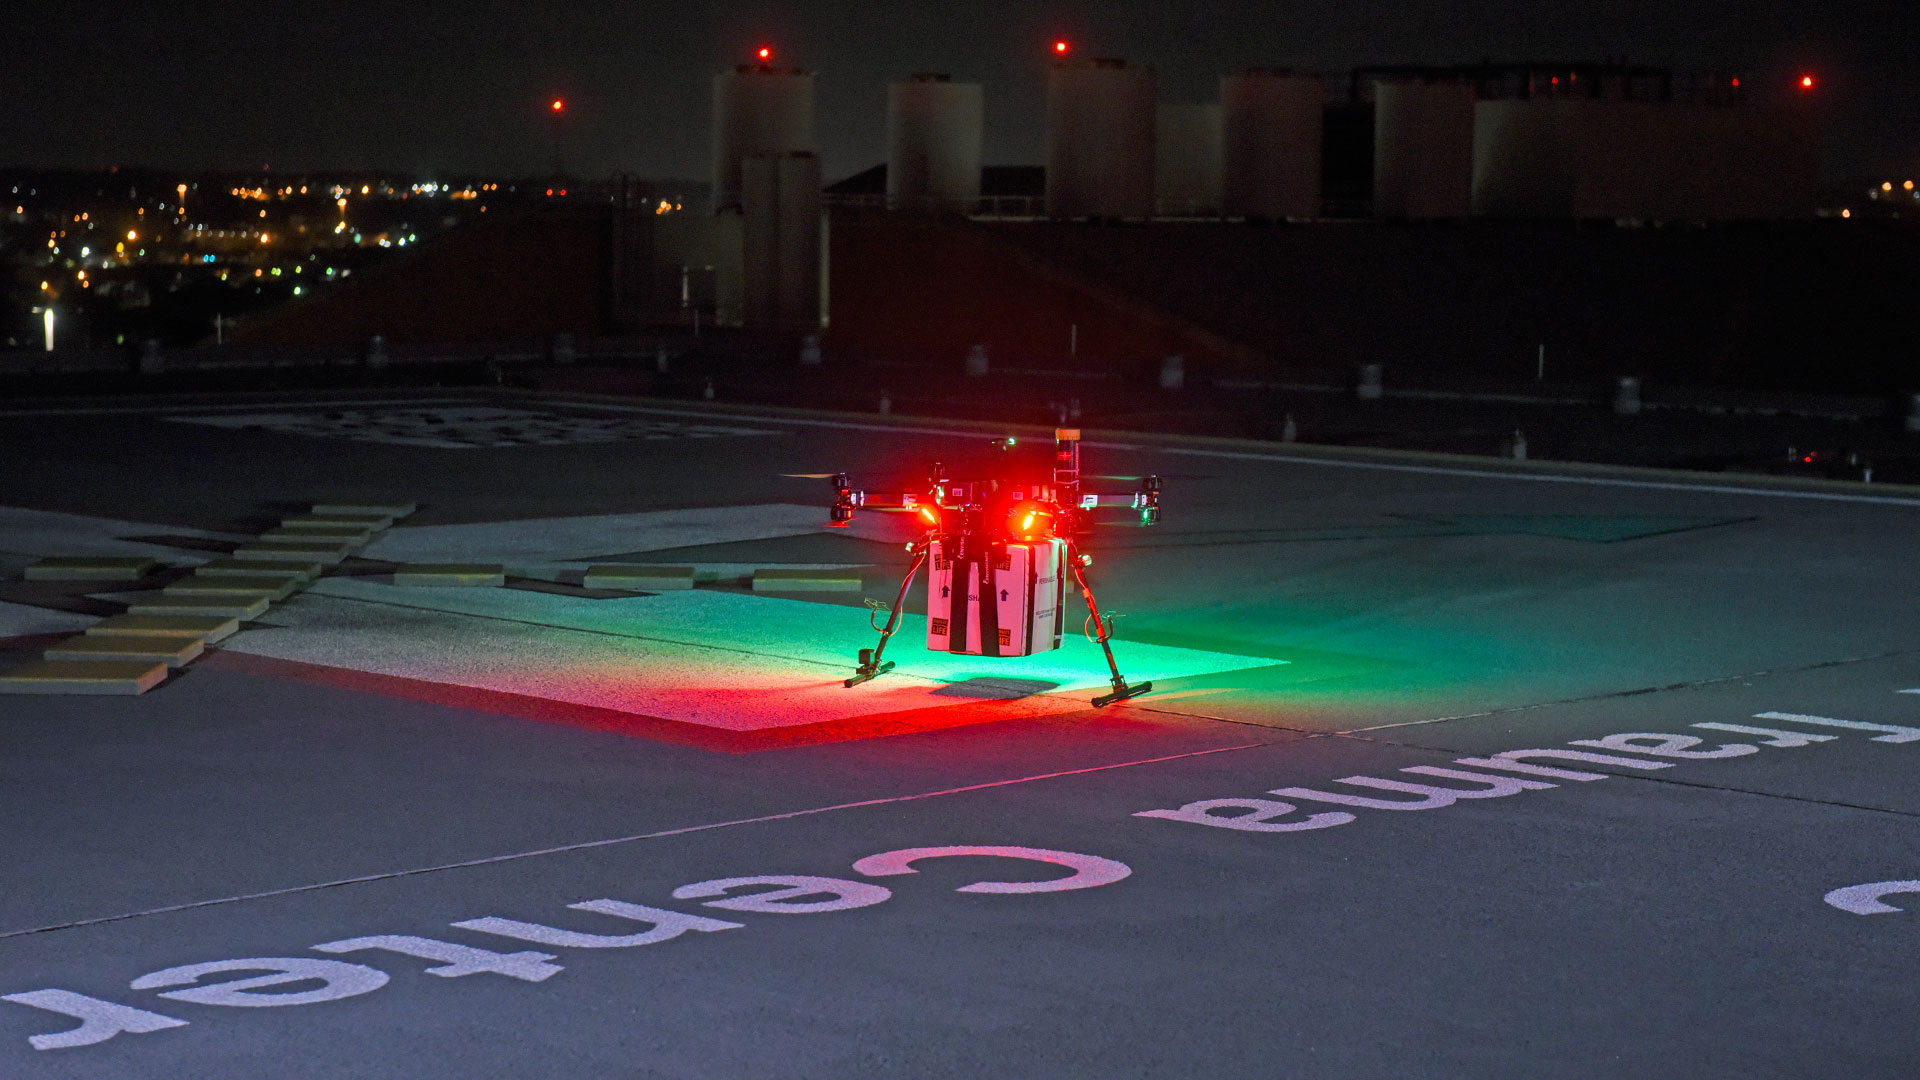 An aerial drone siting on a landing pad at night, with green and red lights. A cube shaped container is attached to the underside of the drone chassis.